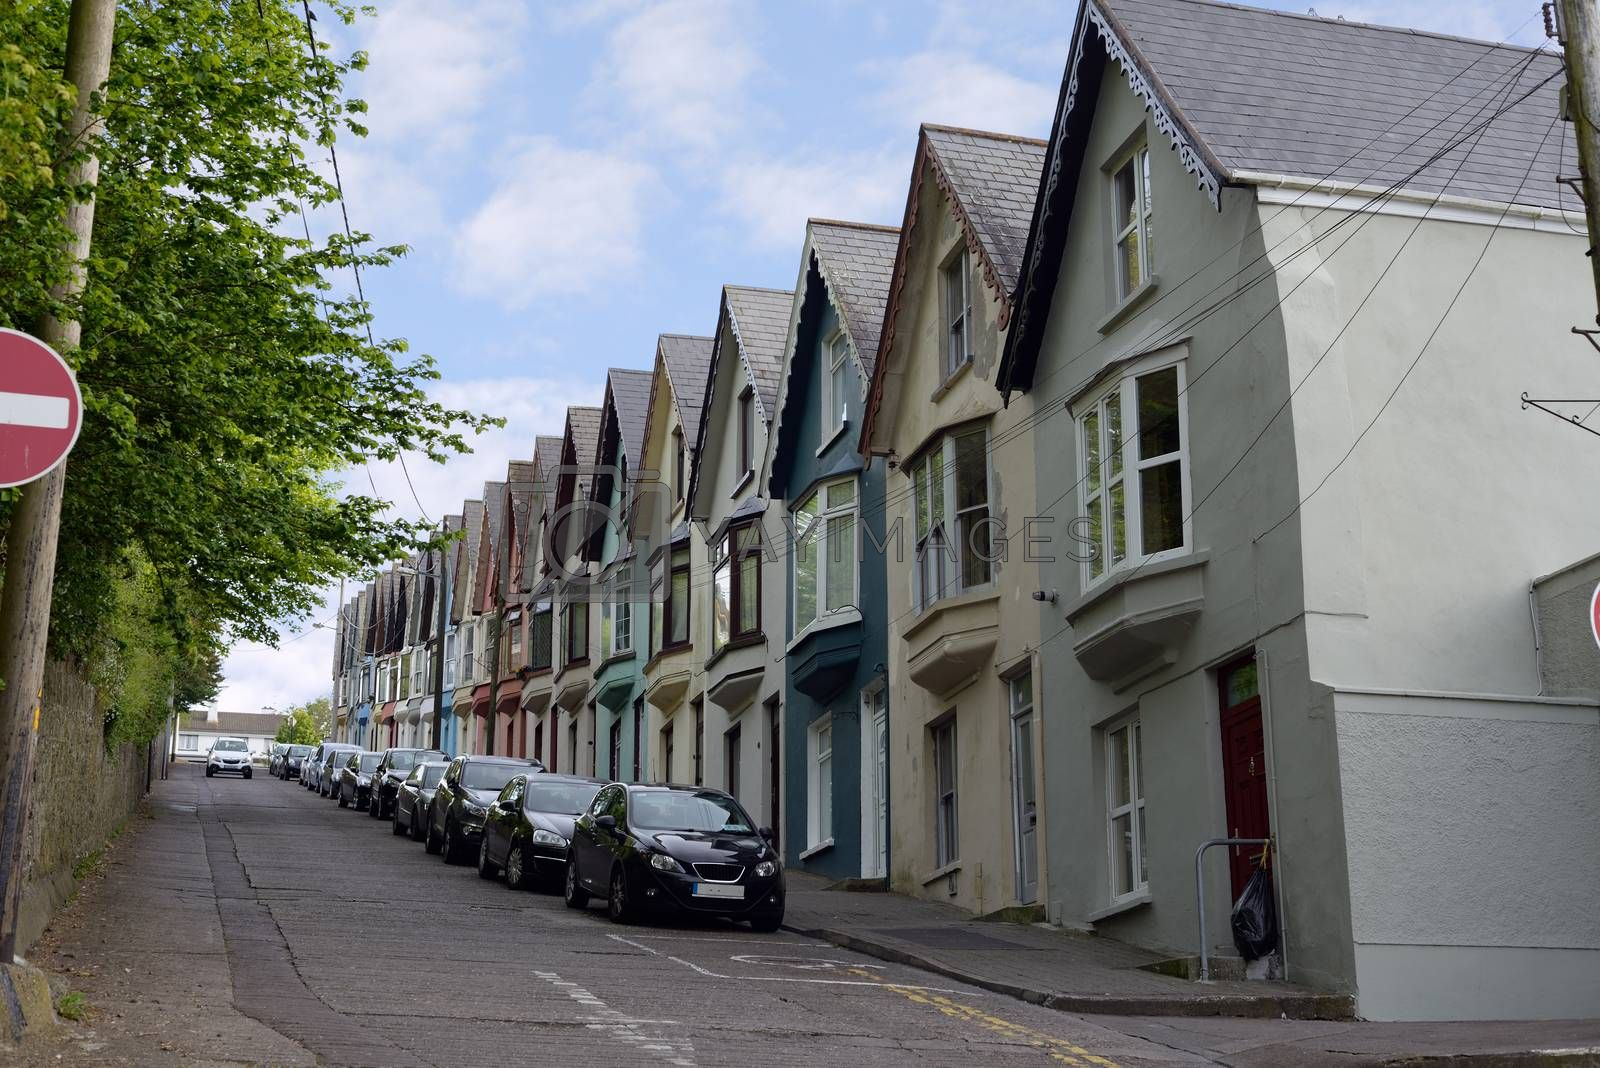 street view of houses on a steep hill in cobh county cork ireland